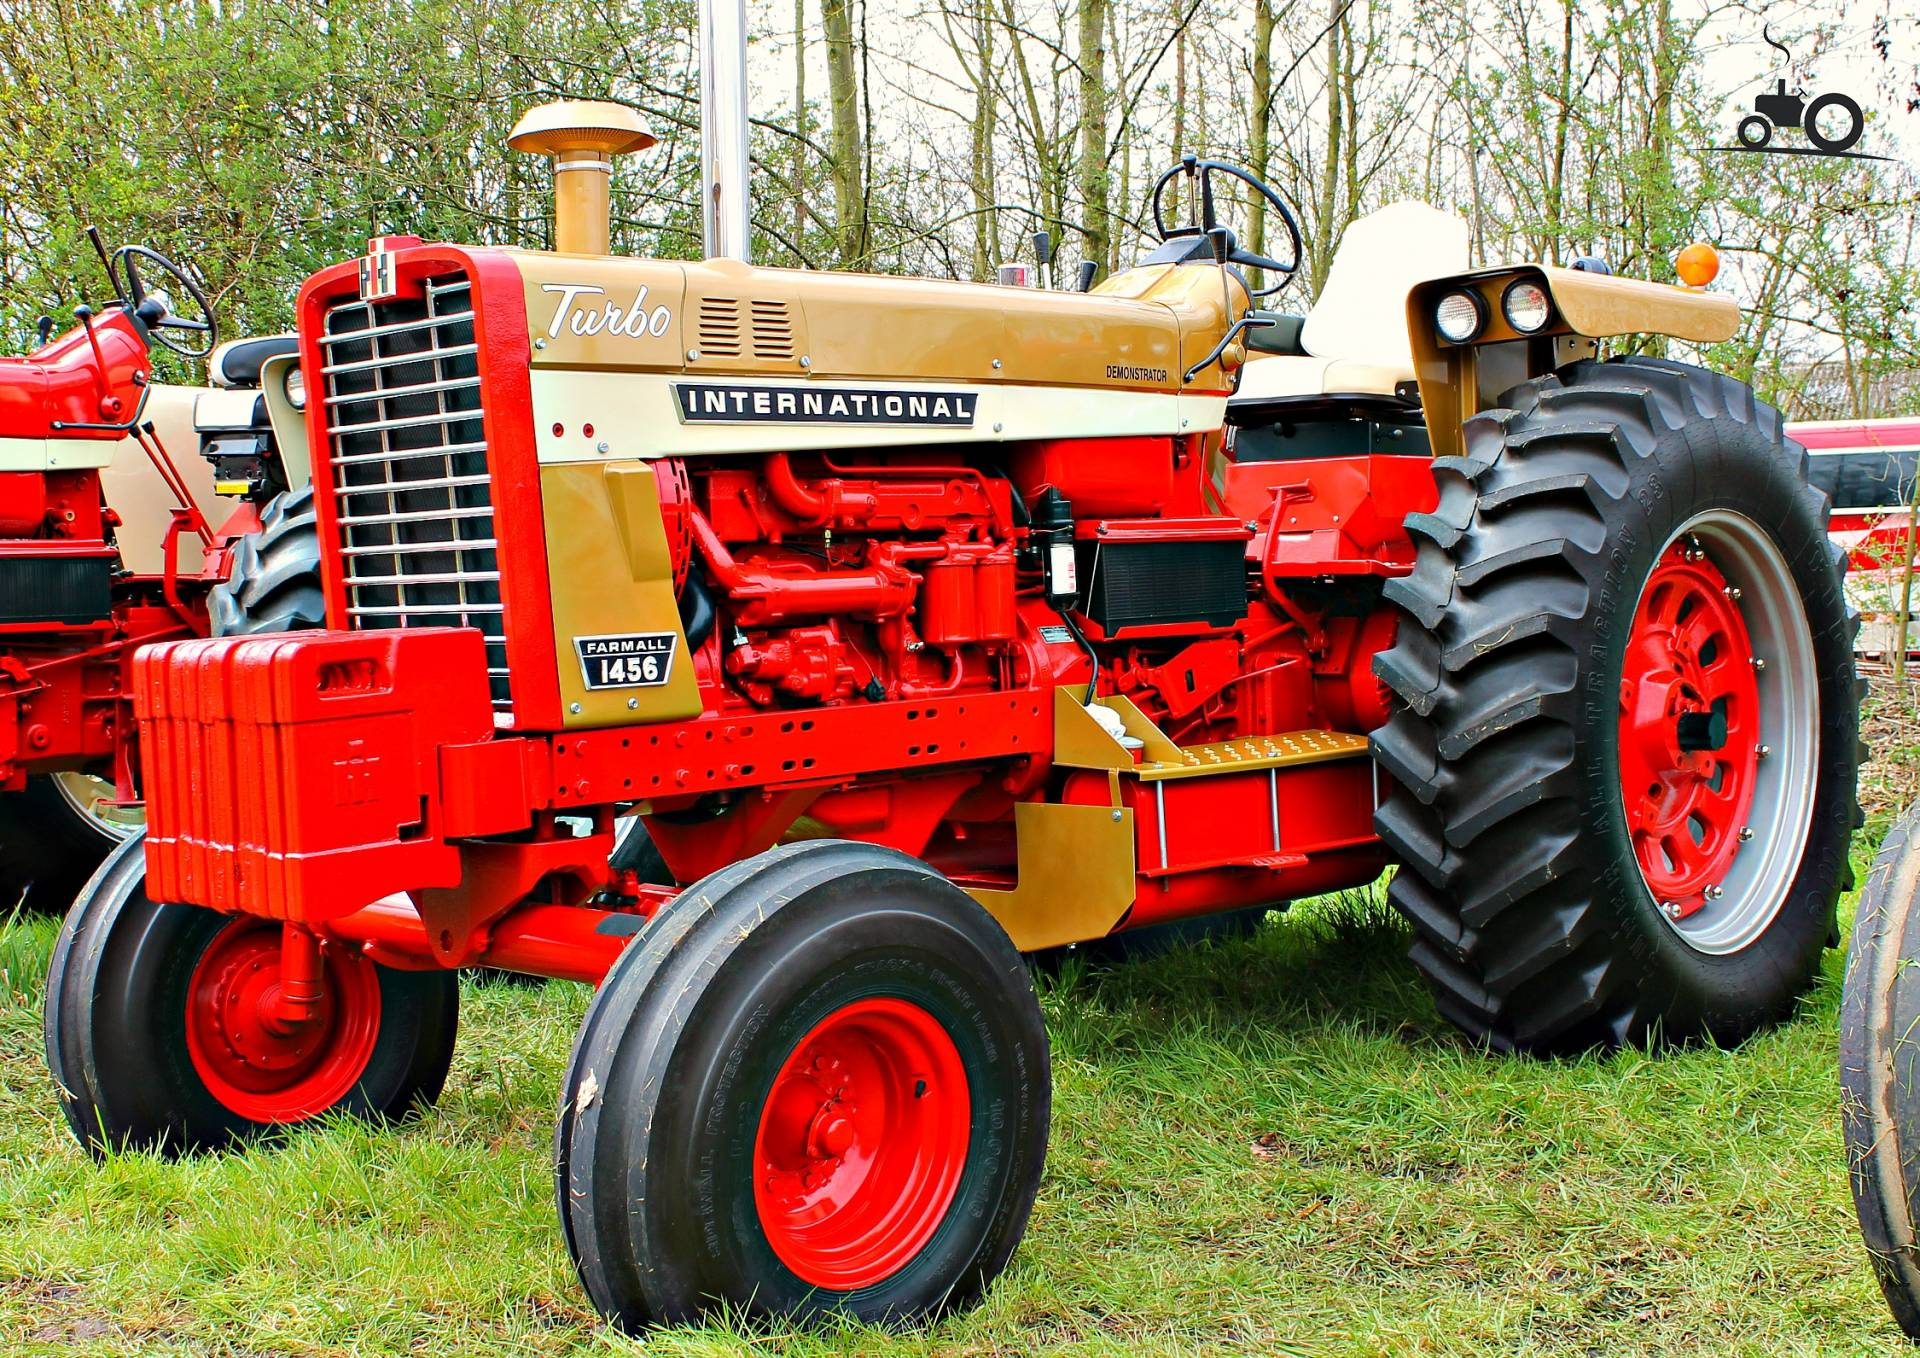 Ih 1456 Tractor : International specs and data everything about the